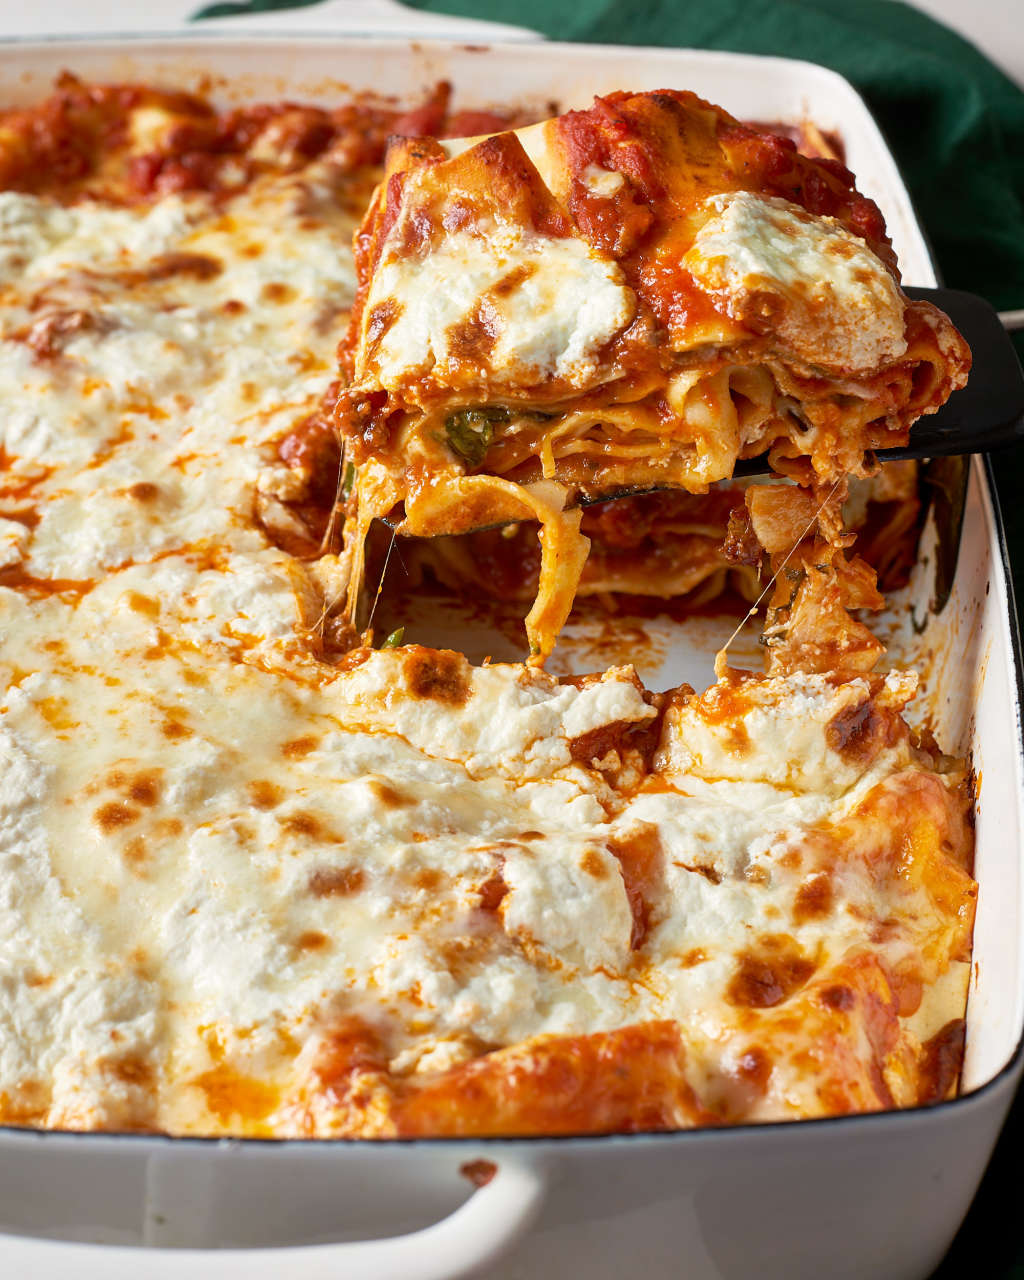 5 Things You Need for Wildly Better Lasagna